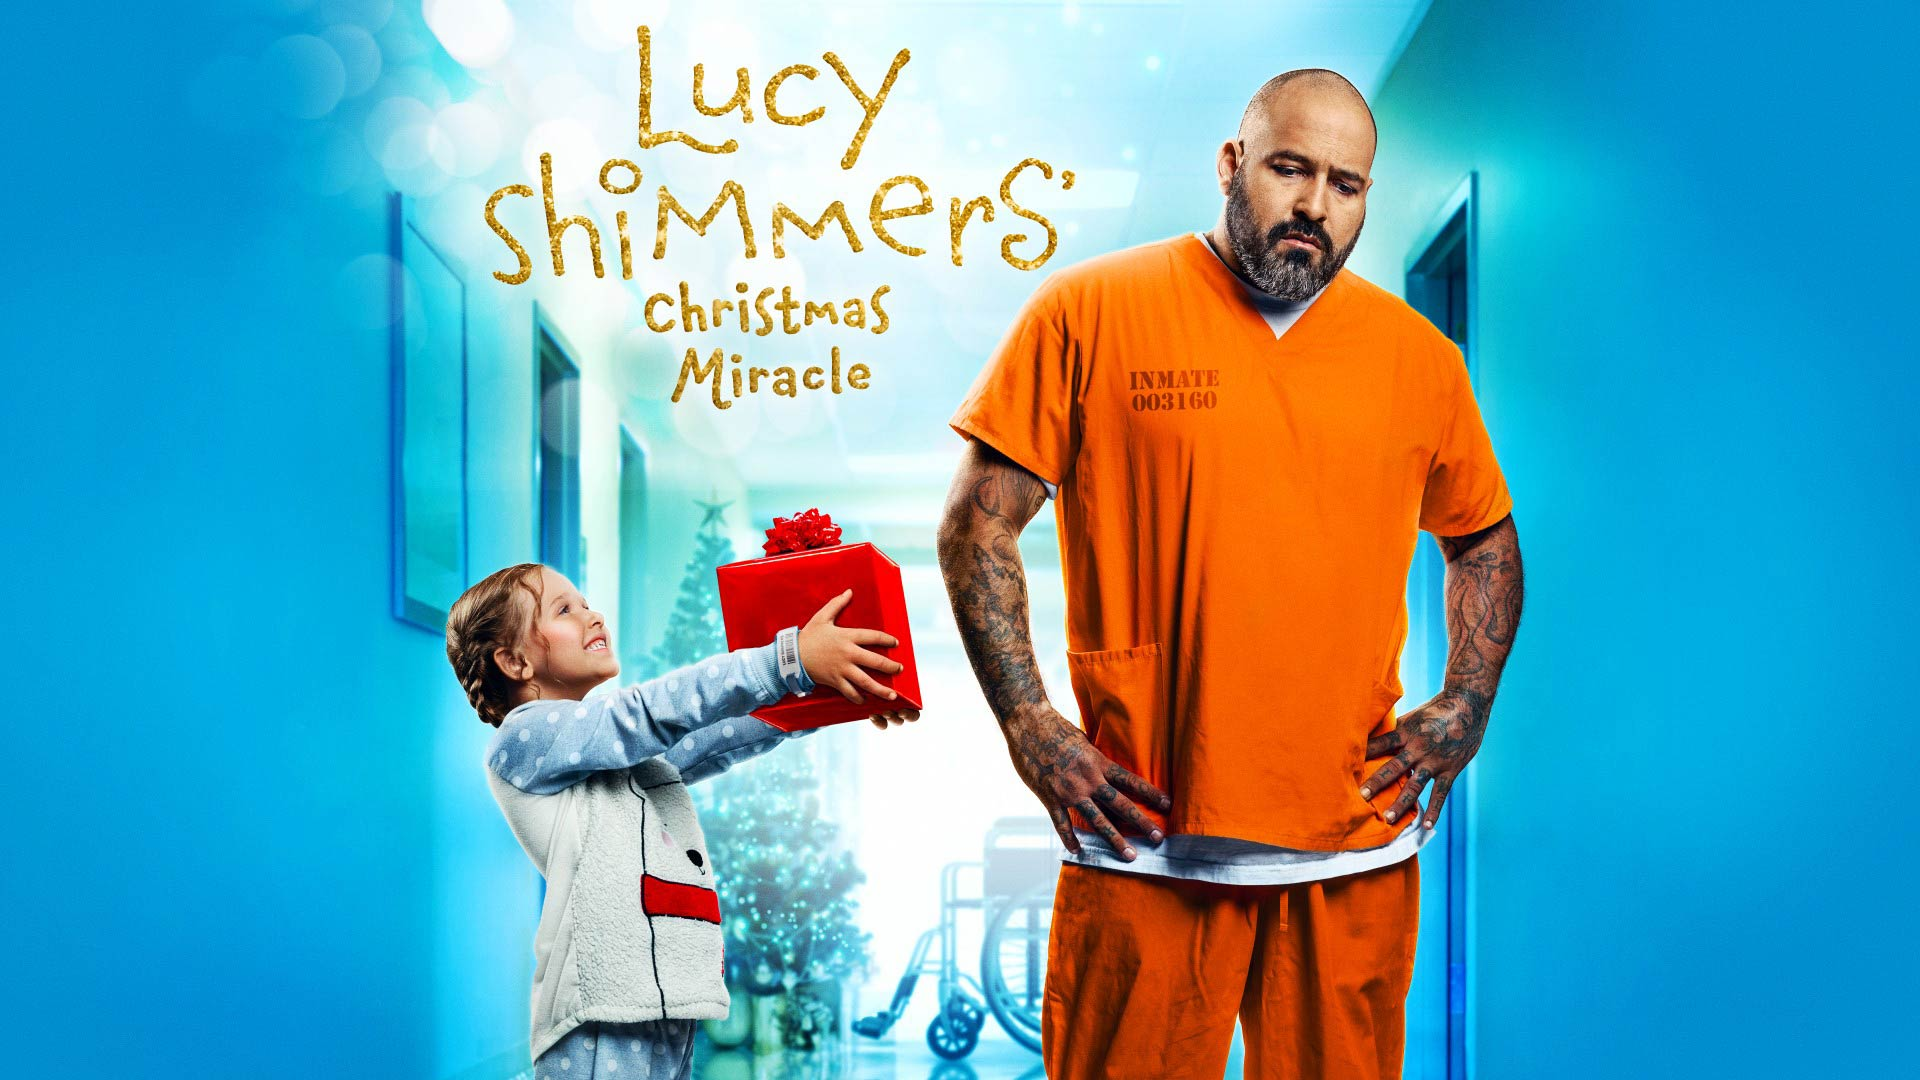 Lucy Shimmers Christmas Miracle